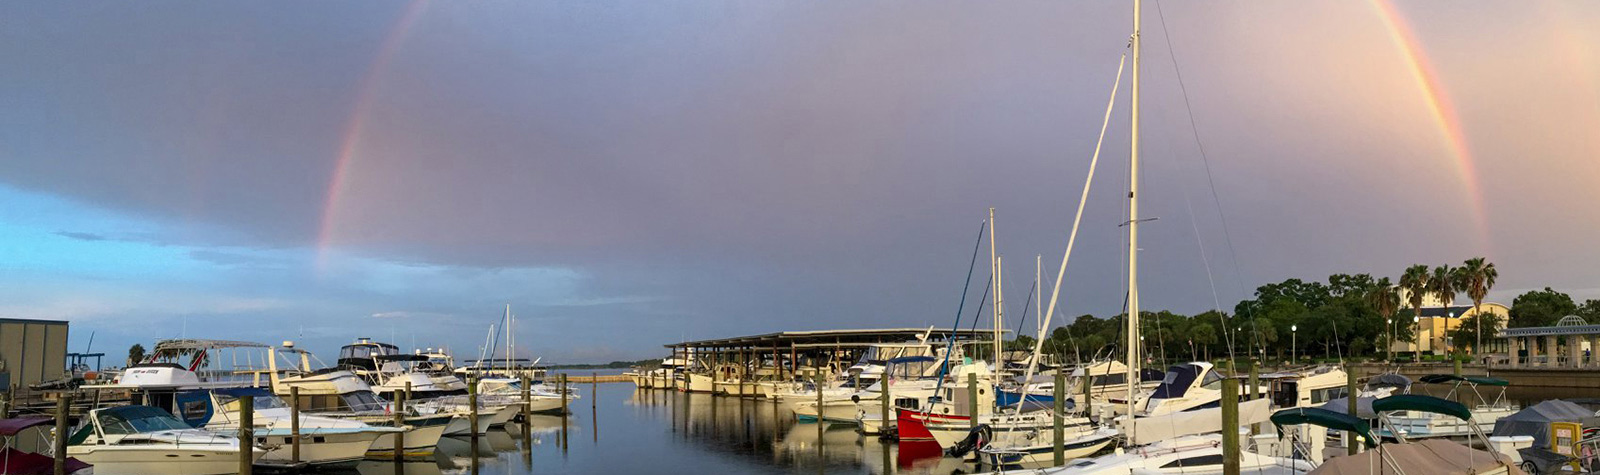 boats at dock with a rainbow in the harbor